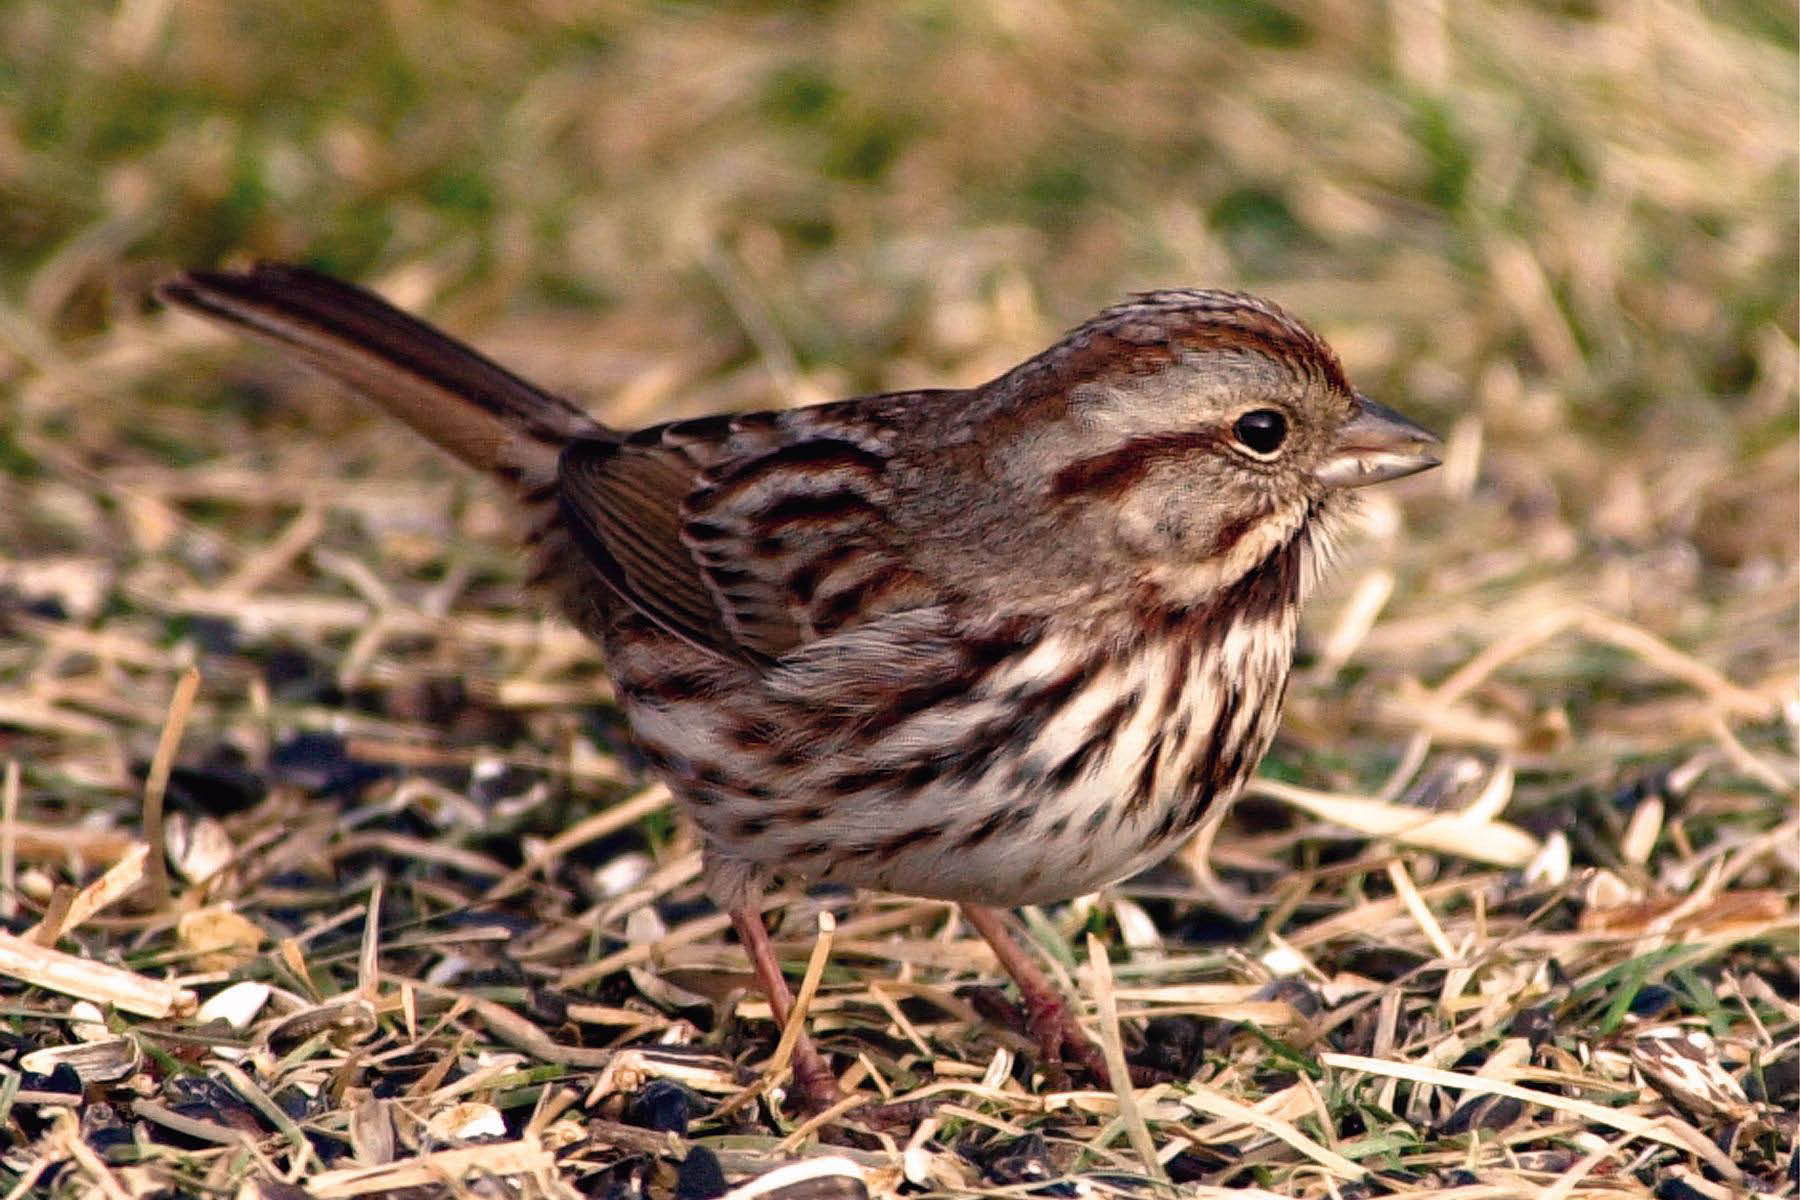 Song sparrows love our birdseed blends